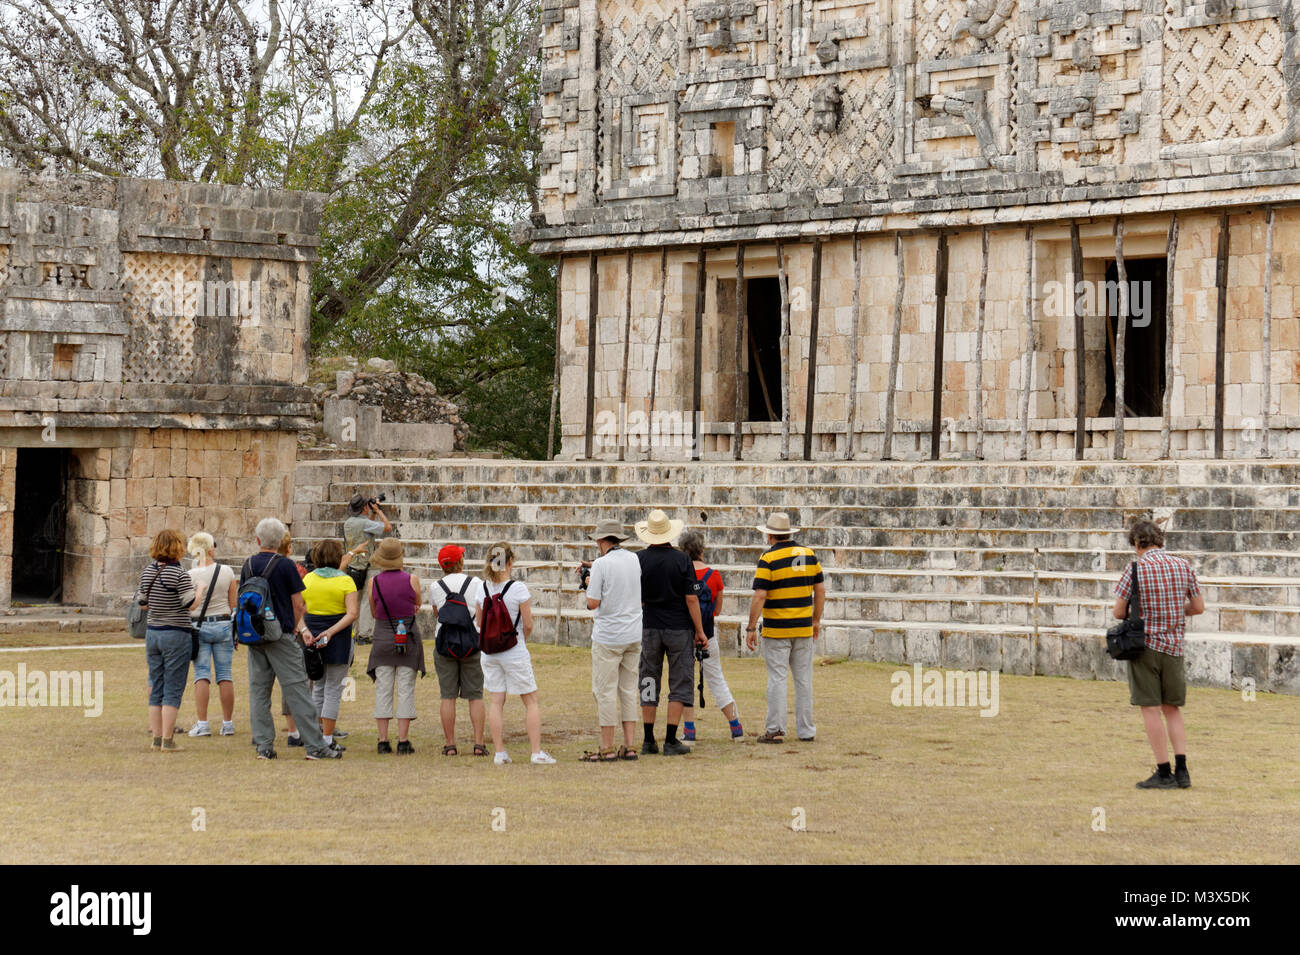 Group of tourists in the Nunnery Quadrangle at the Mayan ruins of Uxmal, Yucatan, Mexico - Stock Image